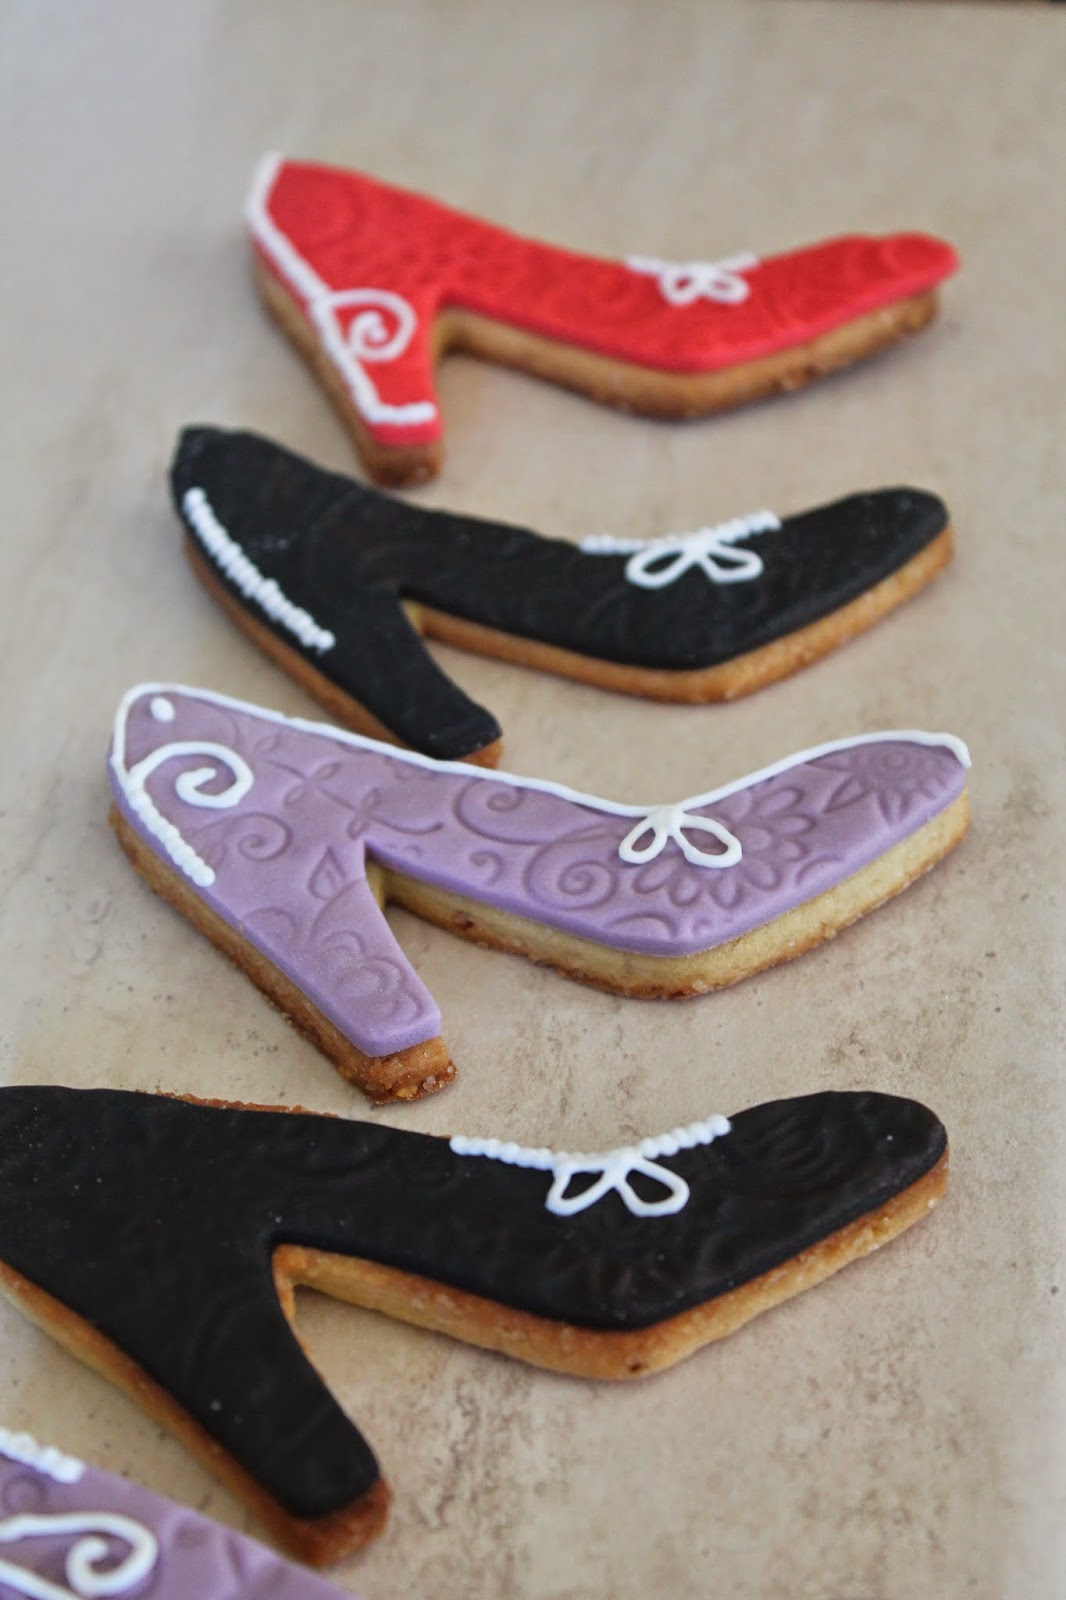 biscotti scarpetta fashion - cookies fashion shoes